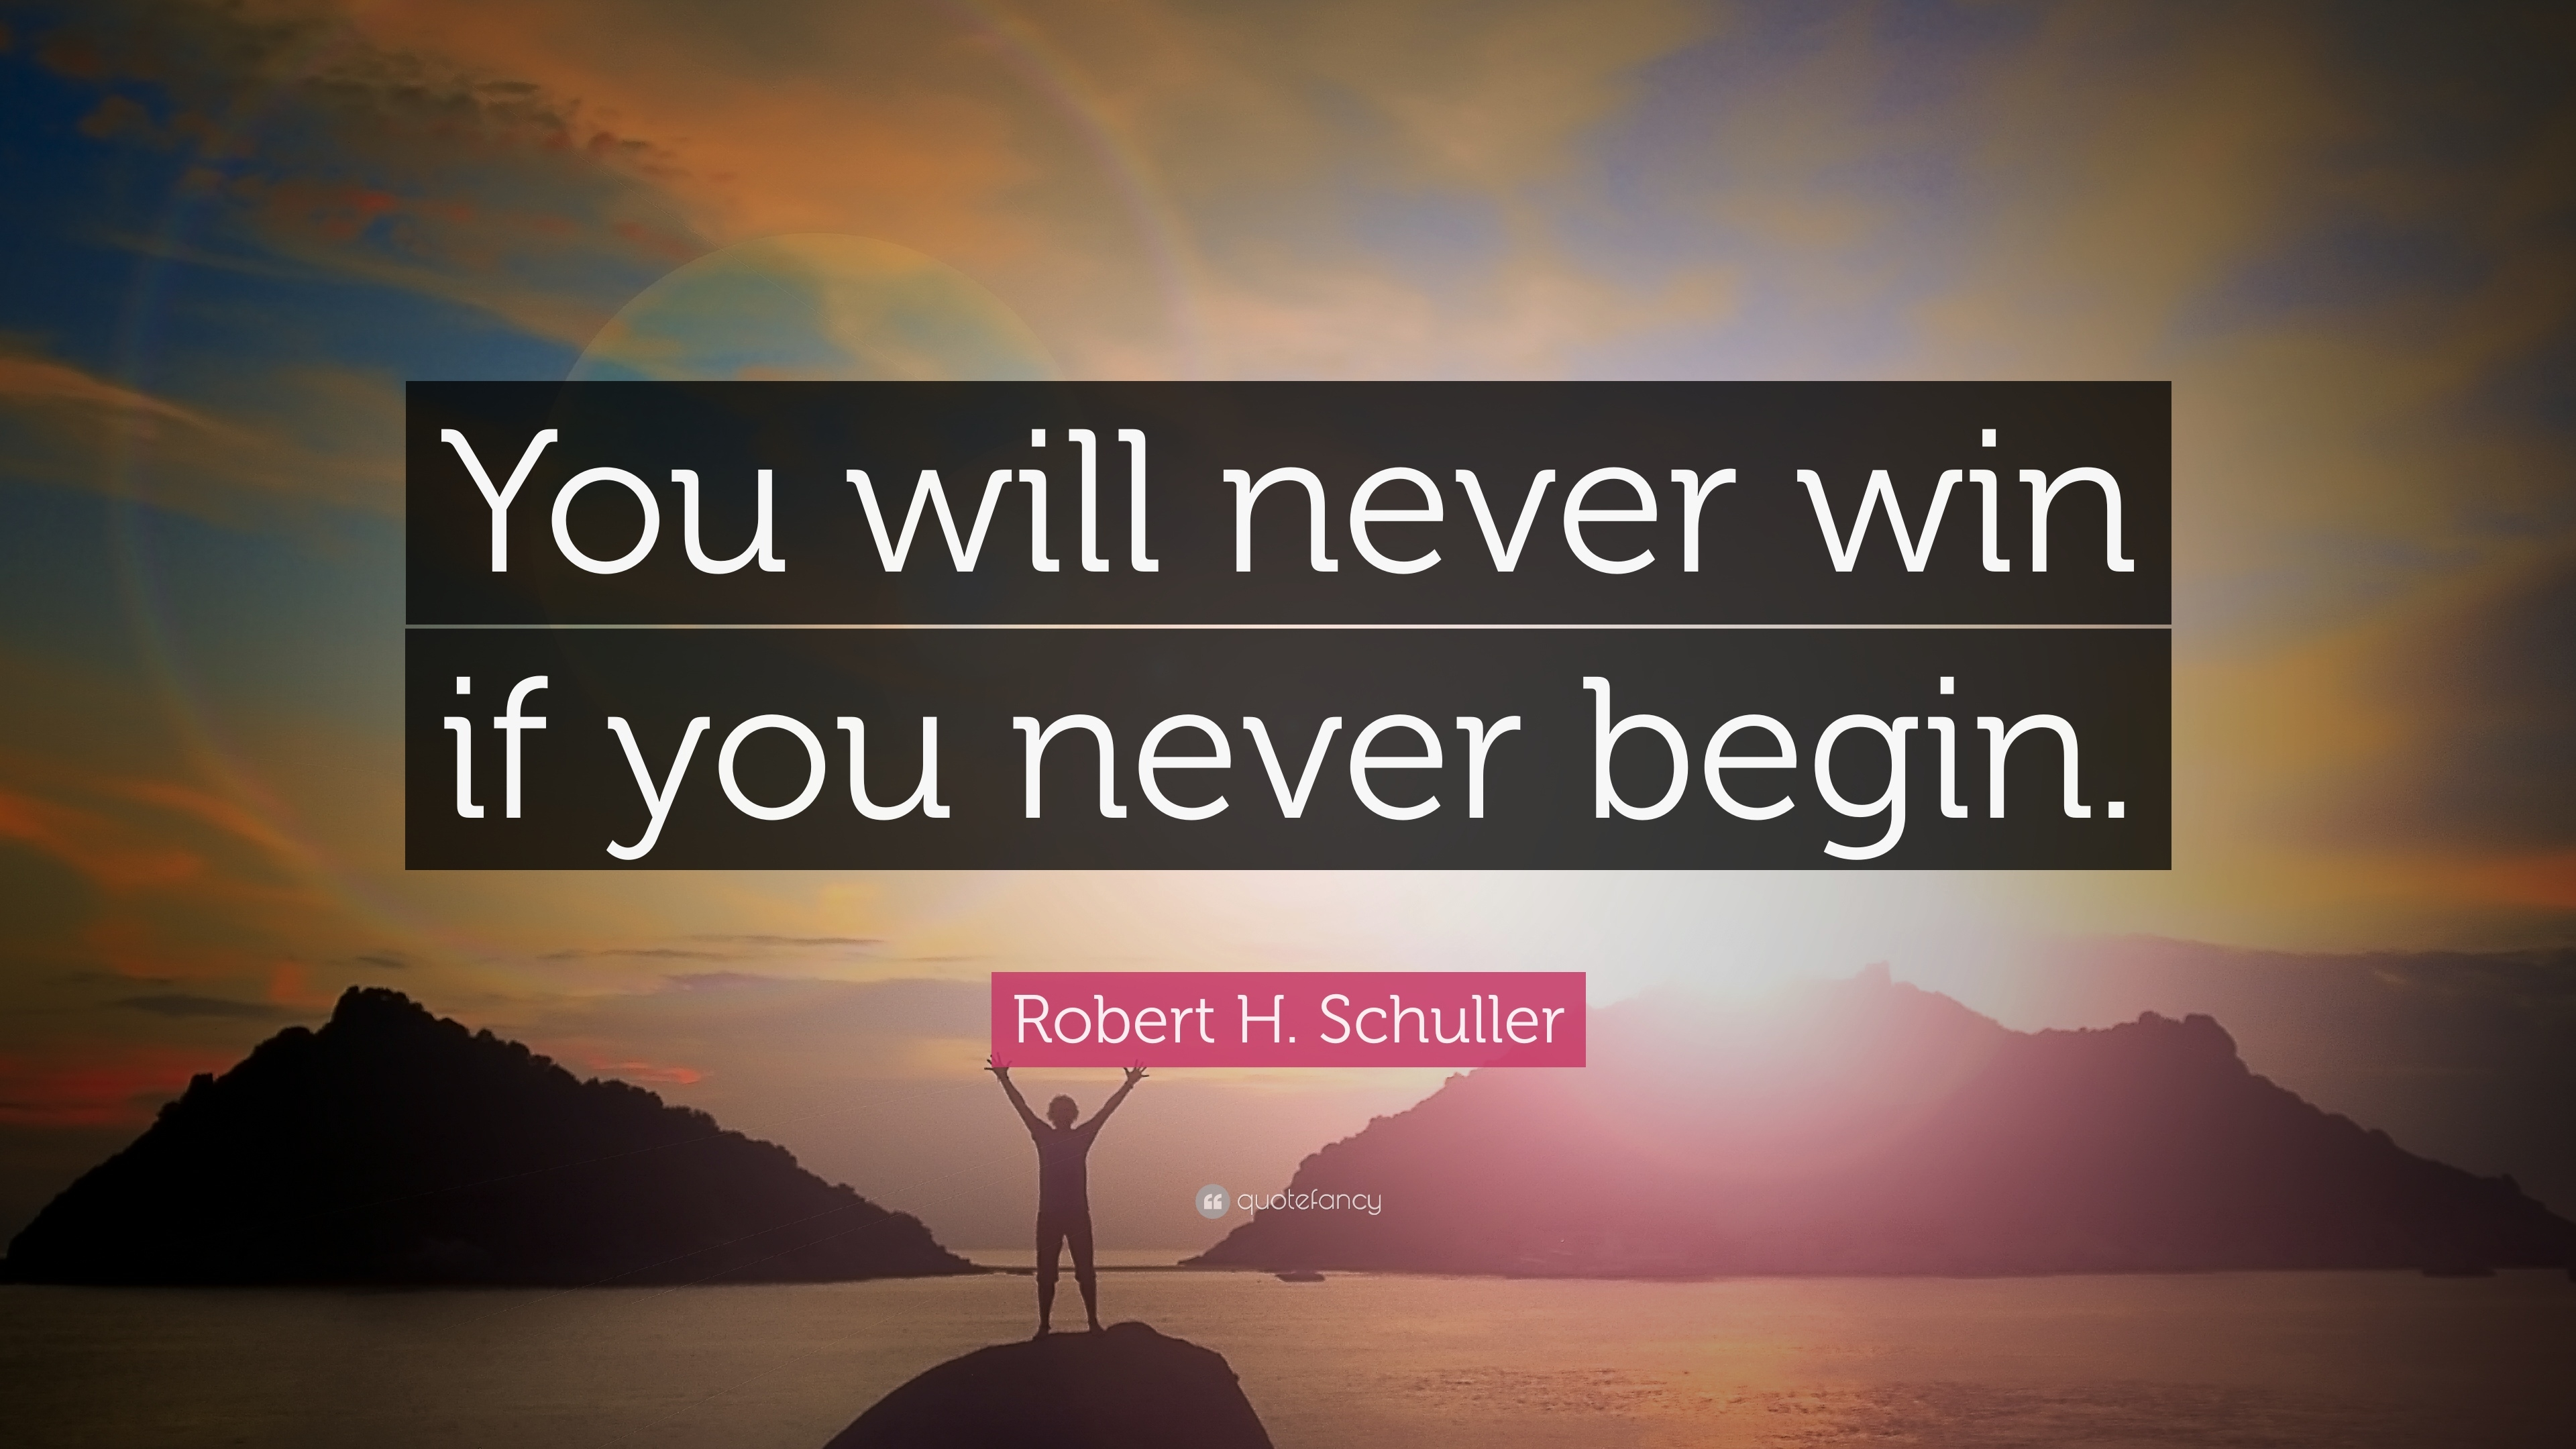 Robert H Schuller Quote You Will Never Win If You Never Begin